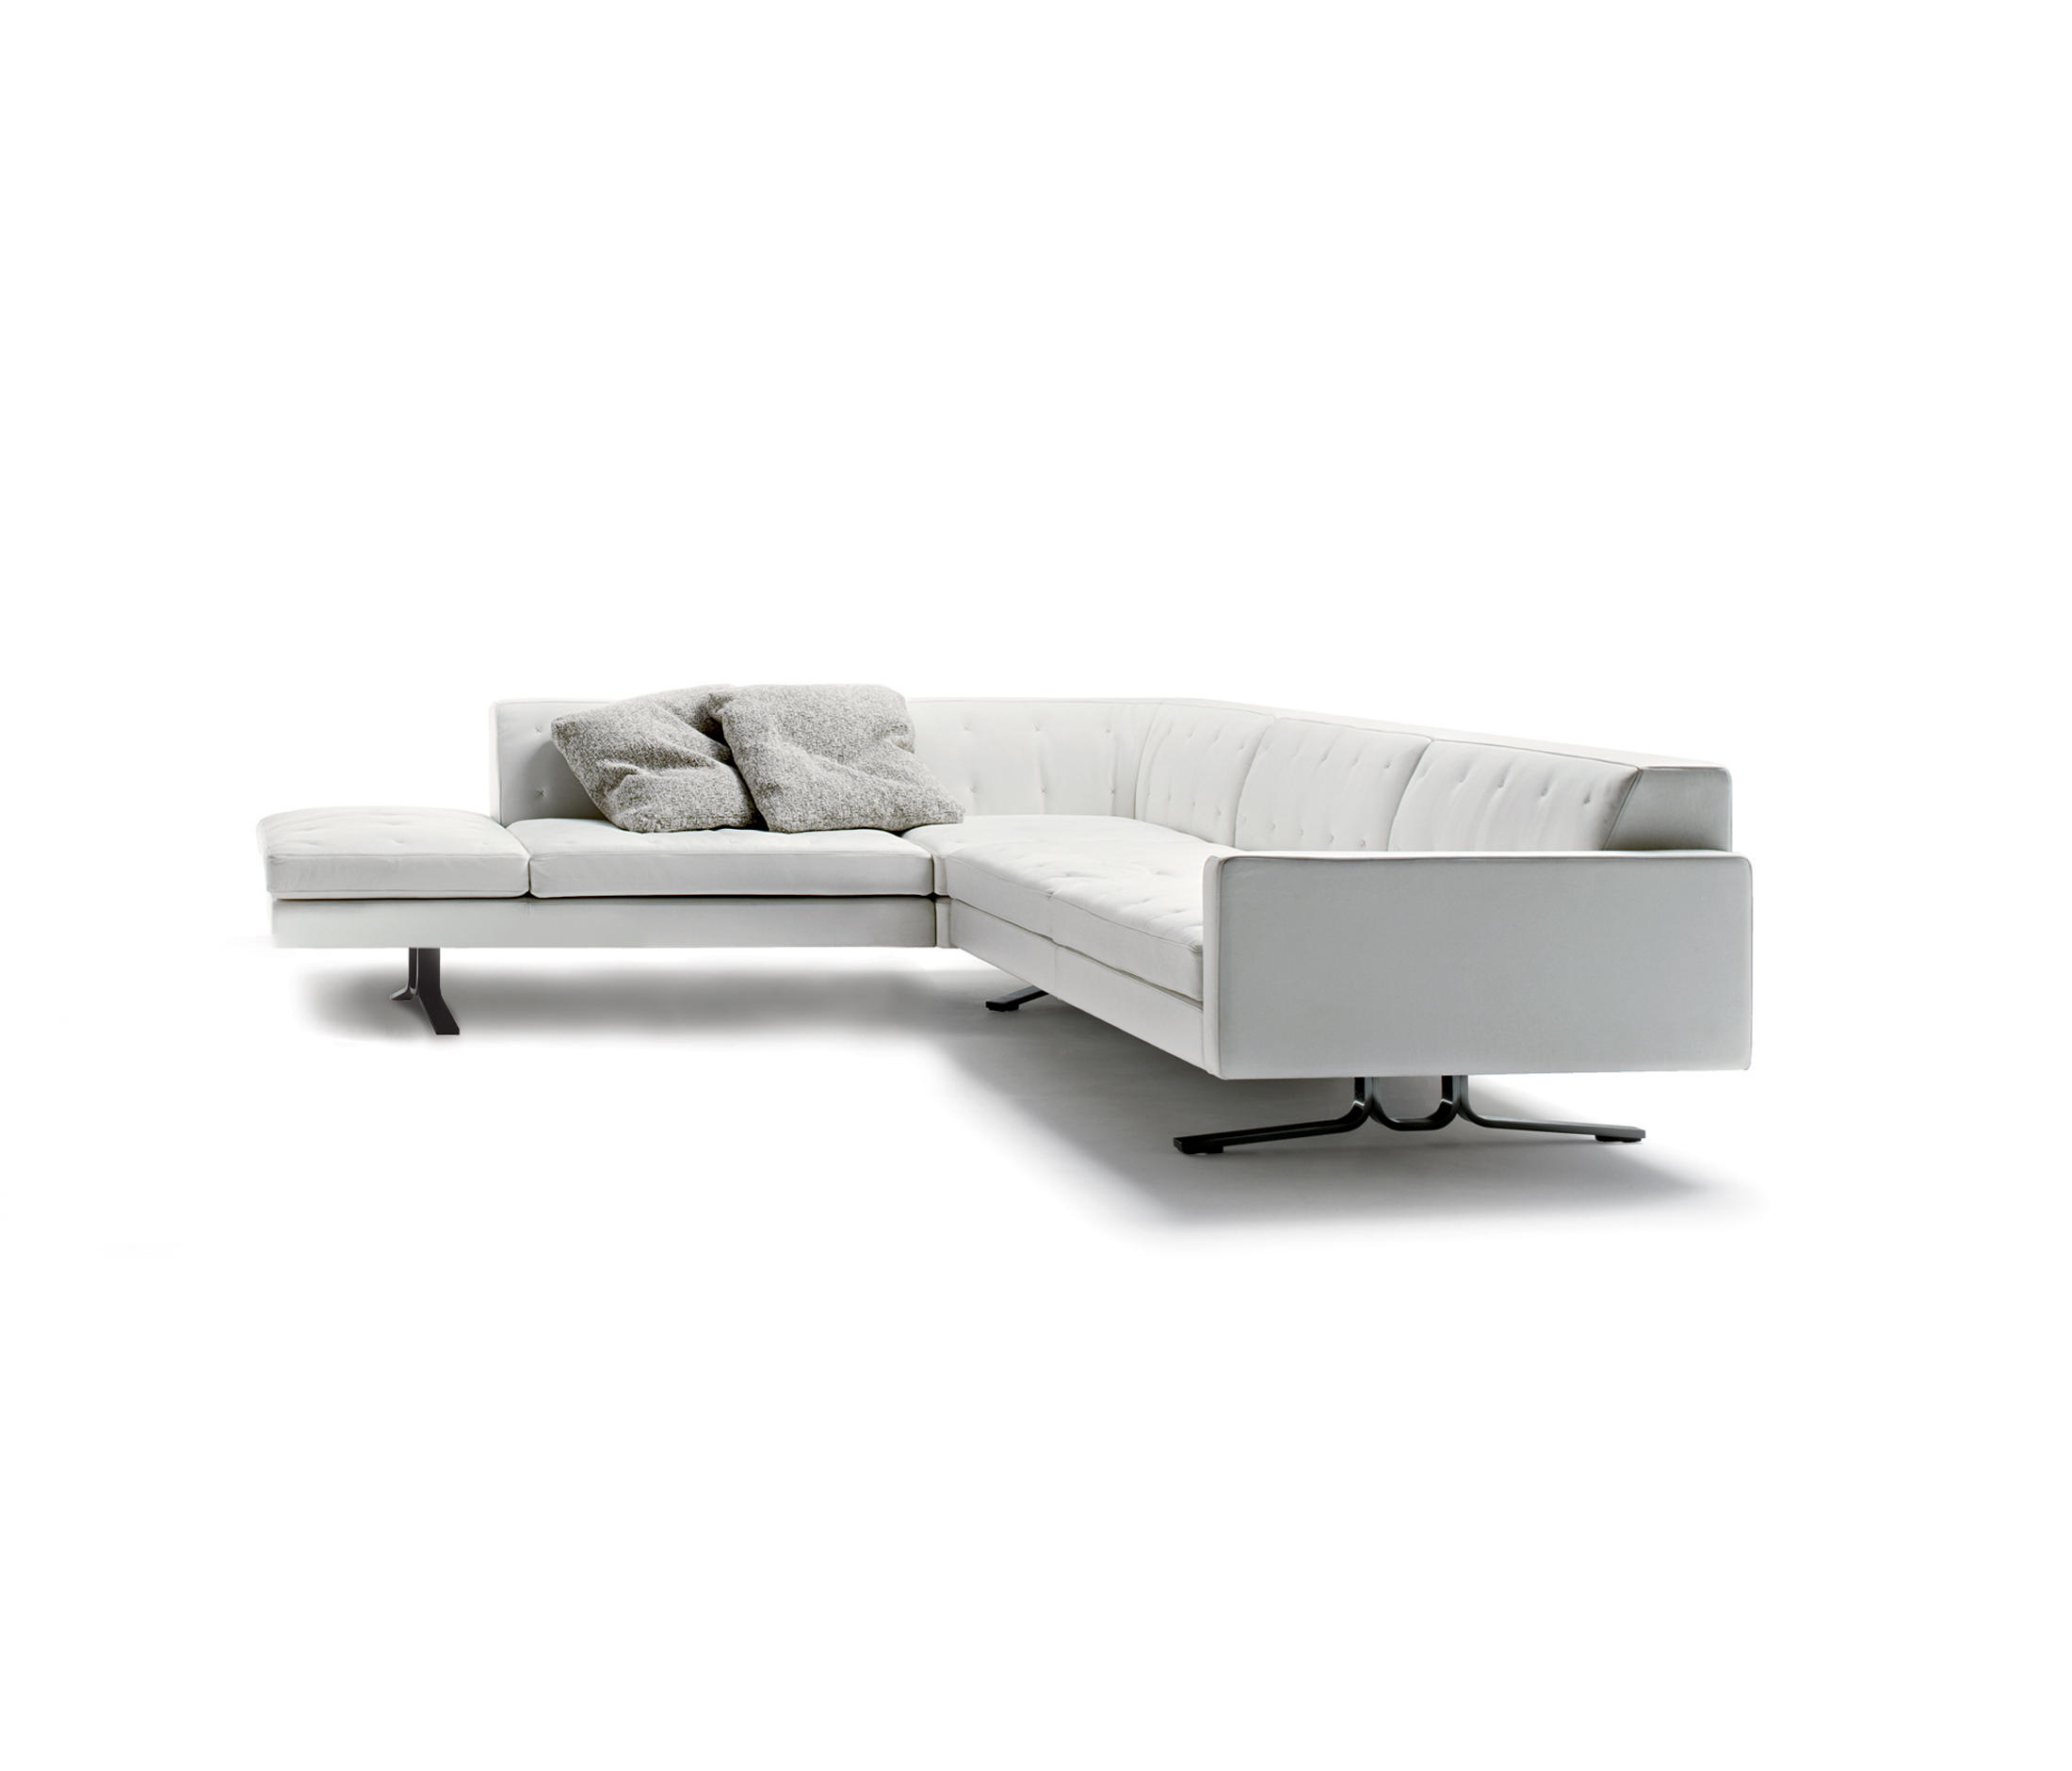 poltrona frau sofa kennedee simple bed poufs from architonic